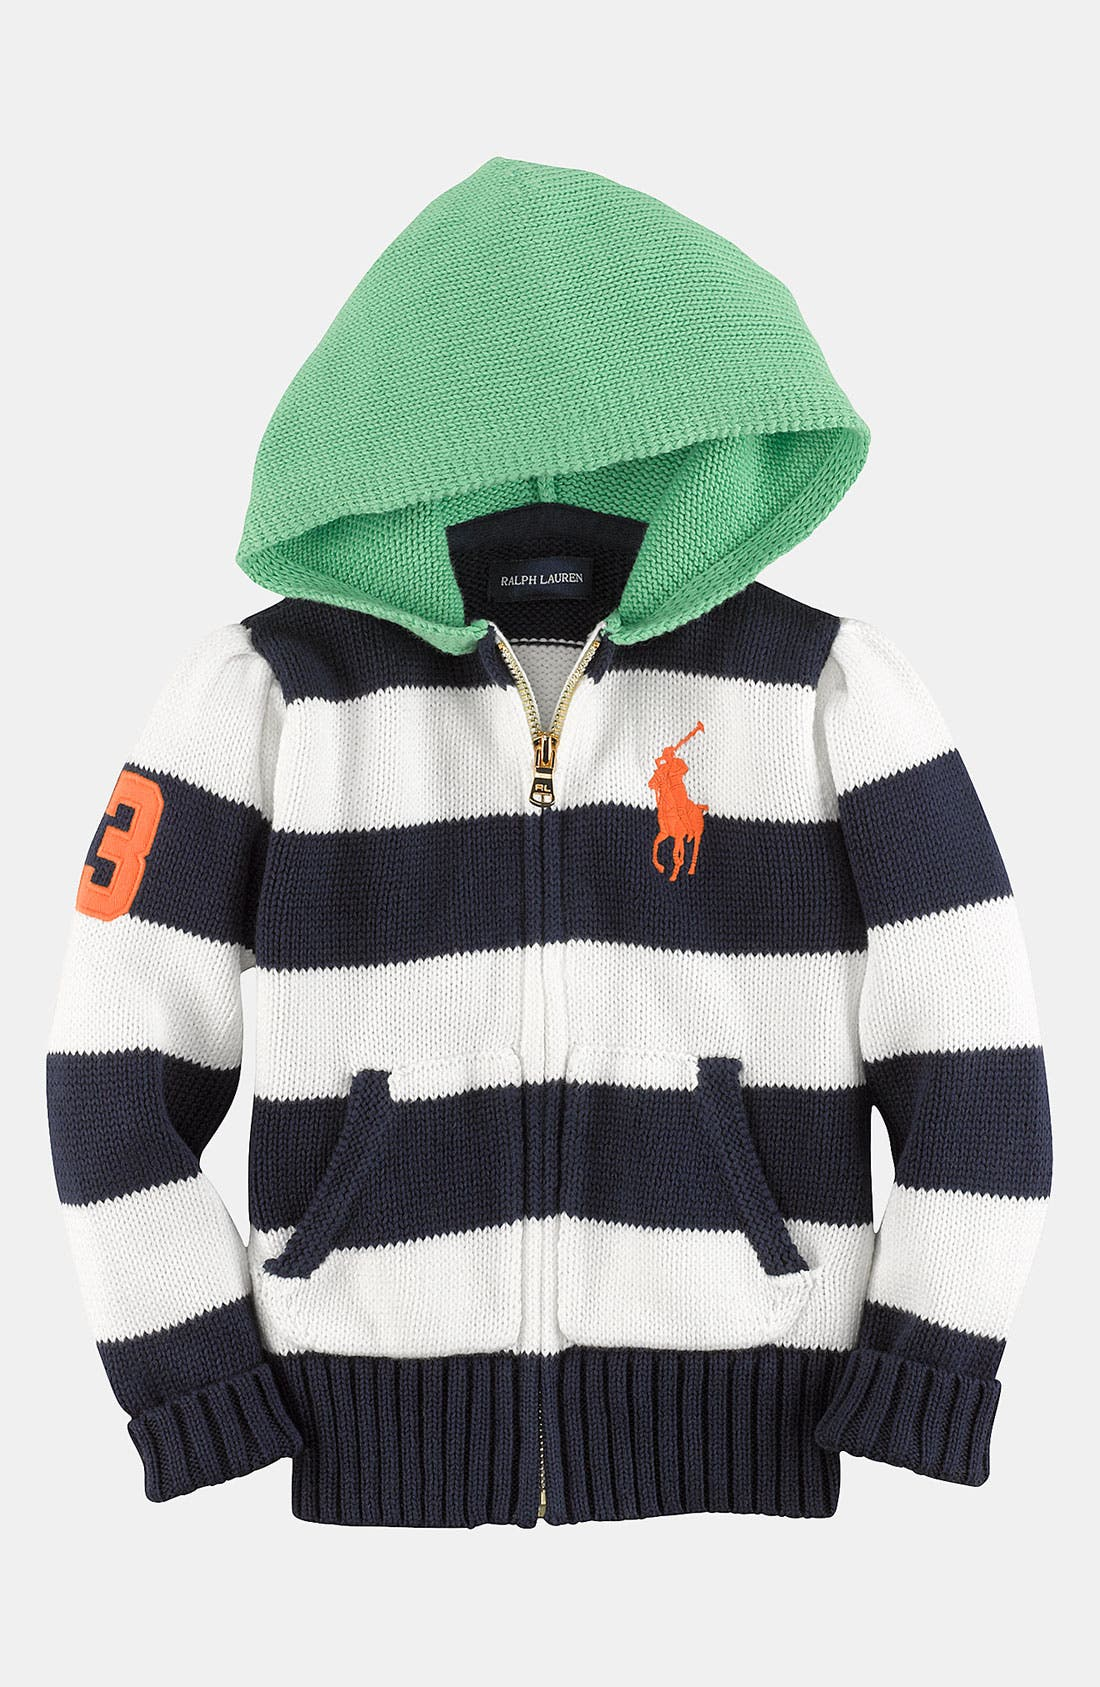 Main Image - Ralph Lauren Knit Hoodie Sweater (Toddler)